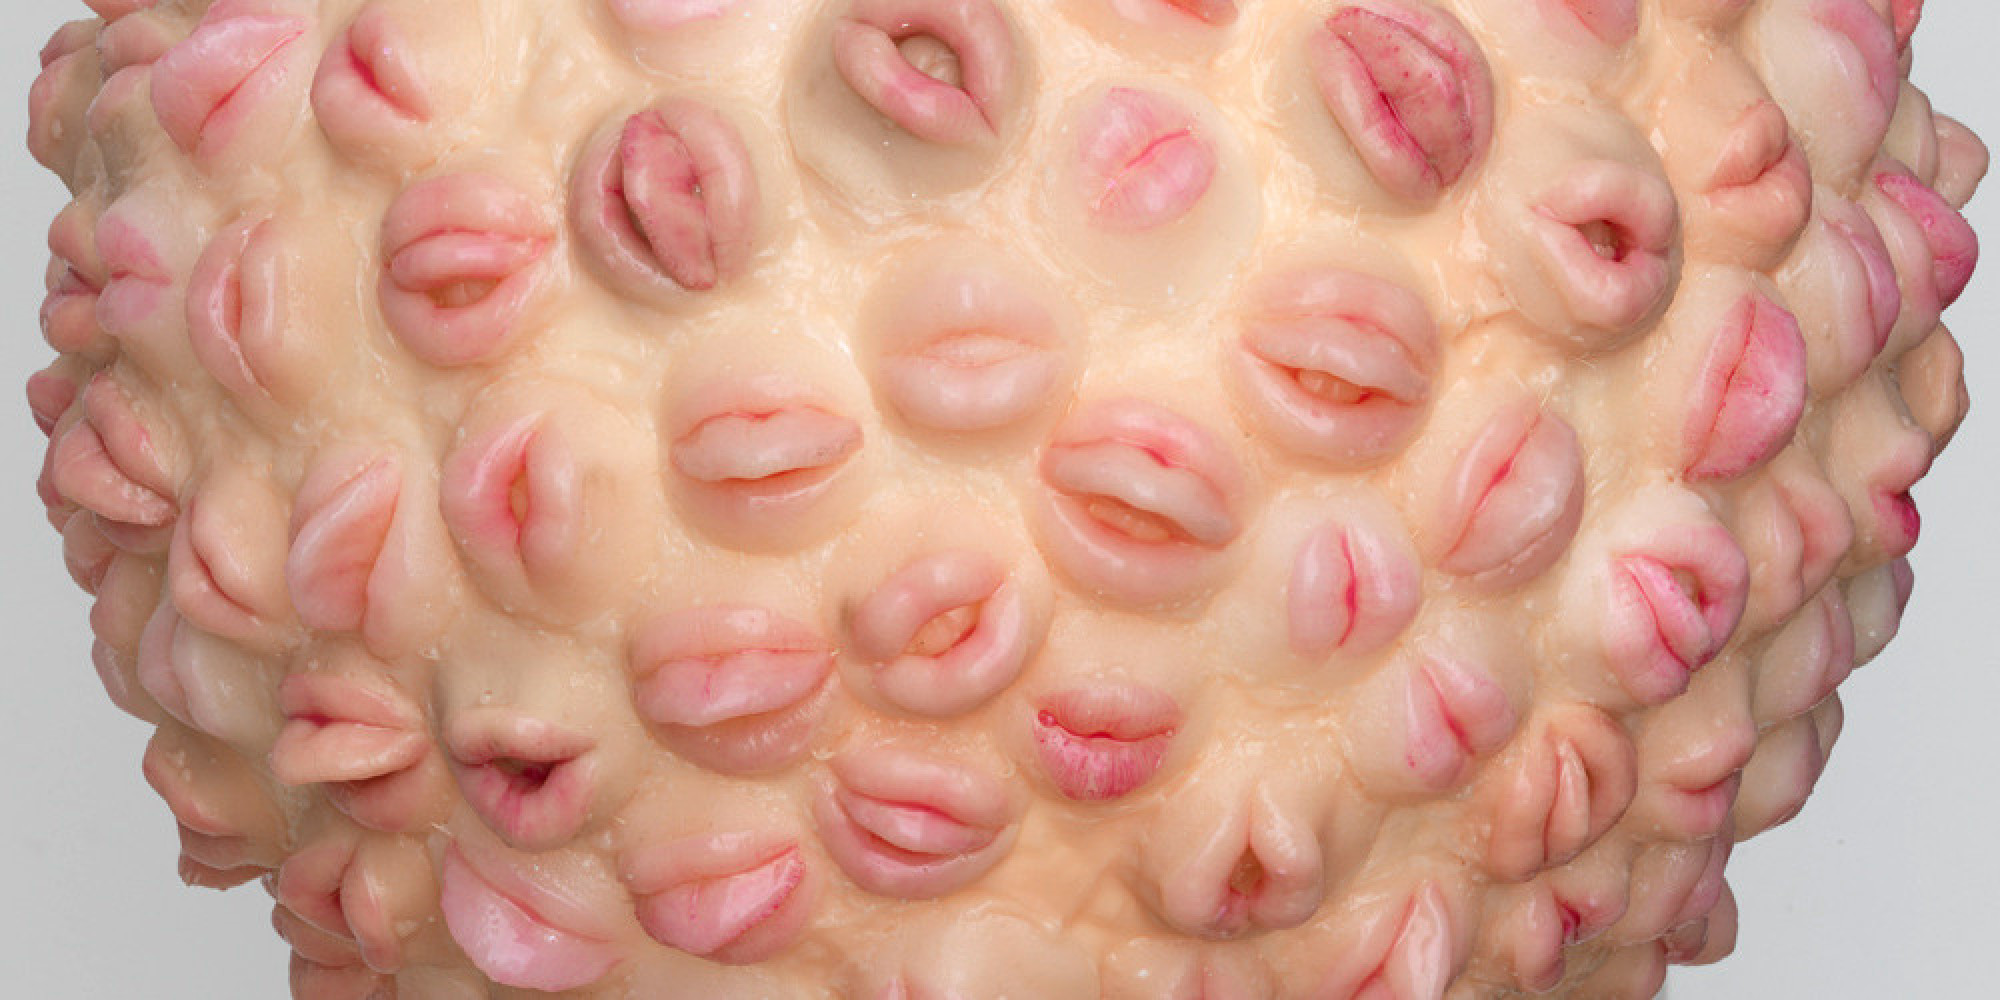 Grotesque Sculptures Combine Girlhood Nostalgia And Sexuality In